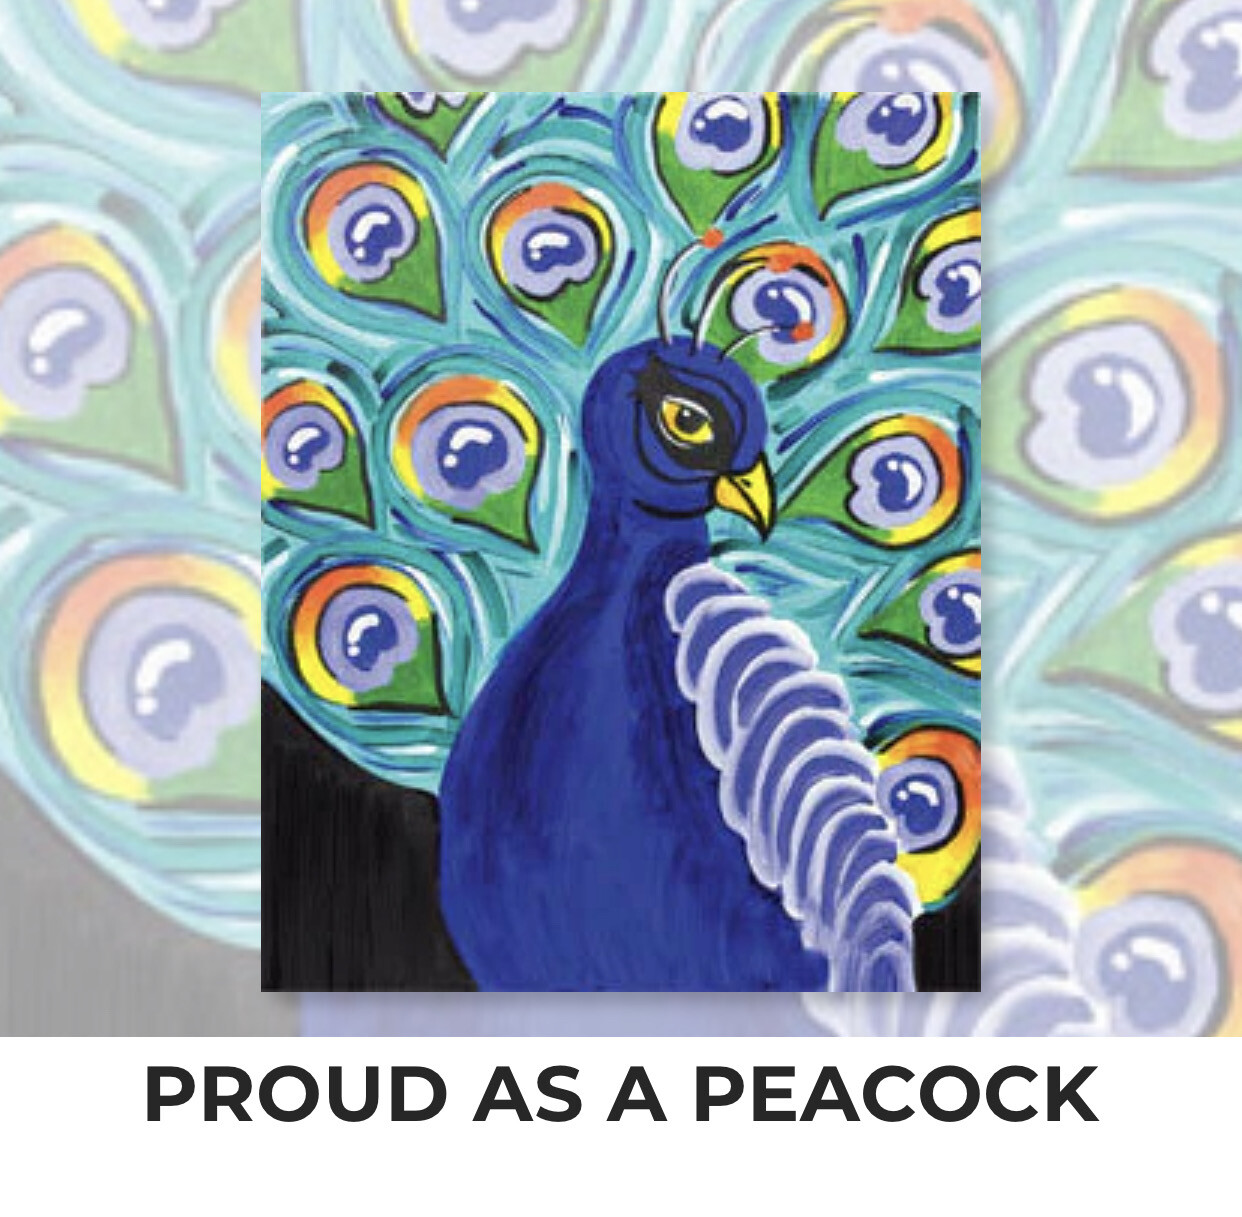 Proud As A Peacock ADULT Acrylic Paint On Canvas DIY Art Kit  - 3 Week Special Order